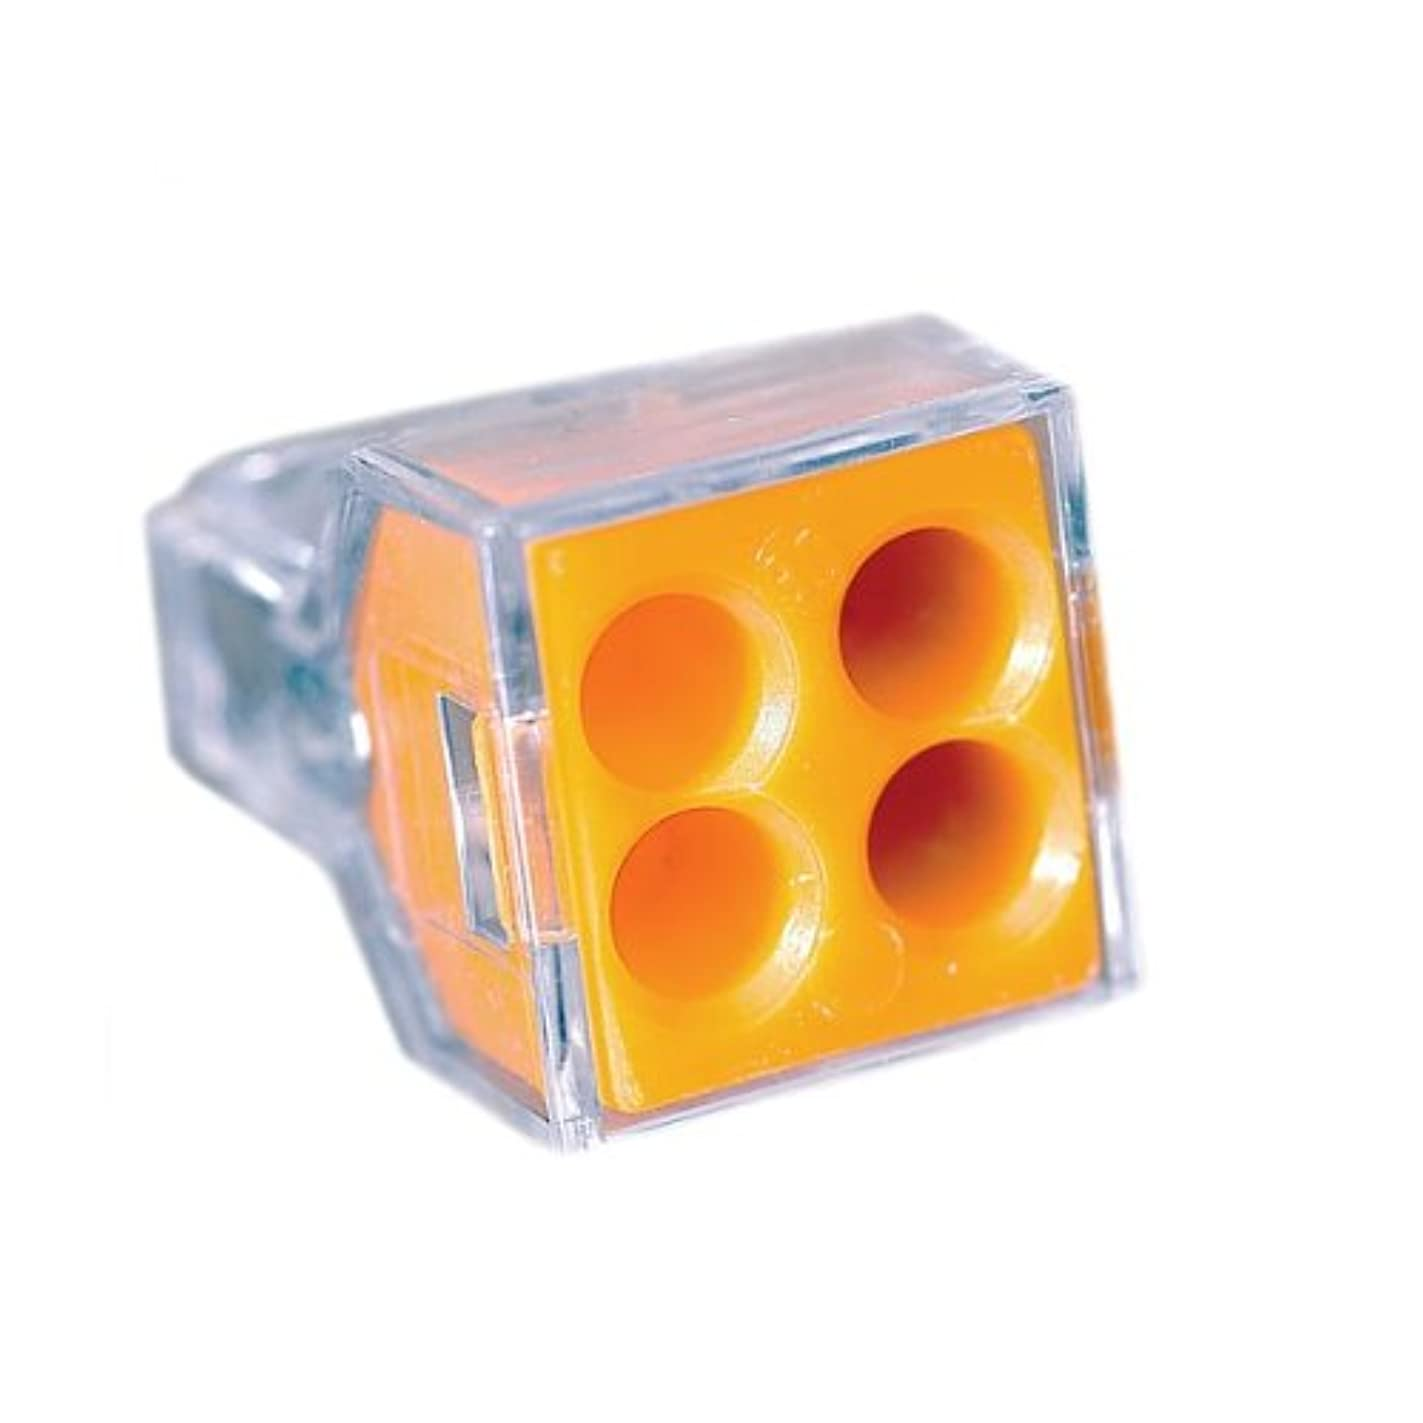 Wago Wire Connector 600 V Clear 4 Conductor 100 / Box